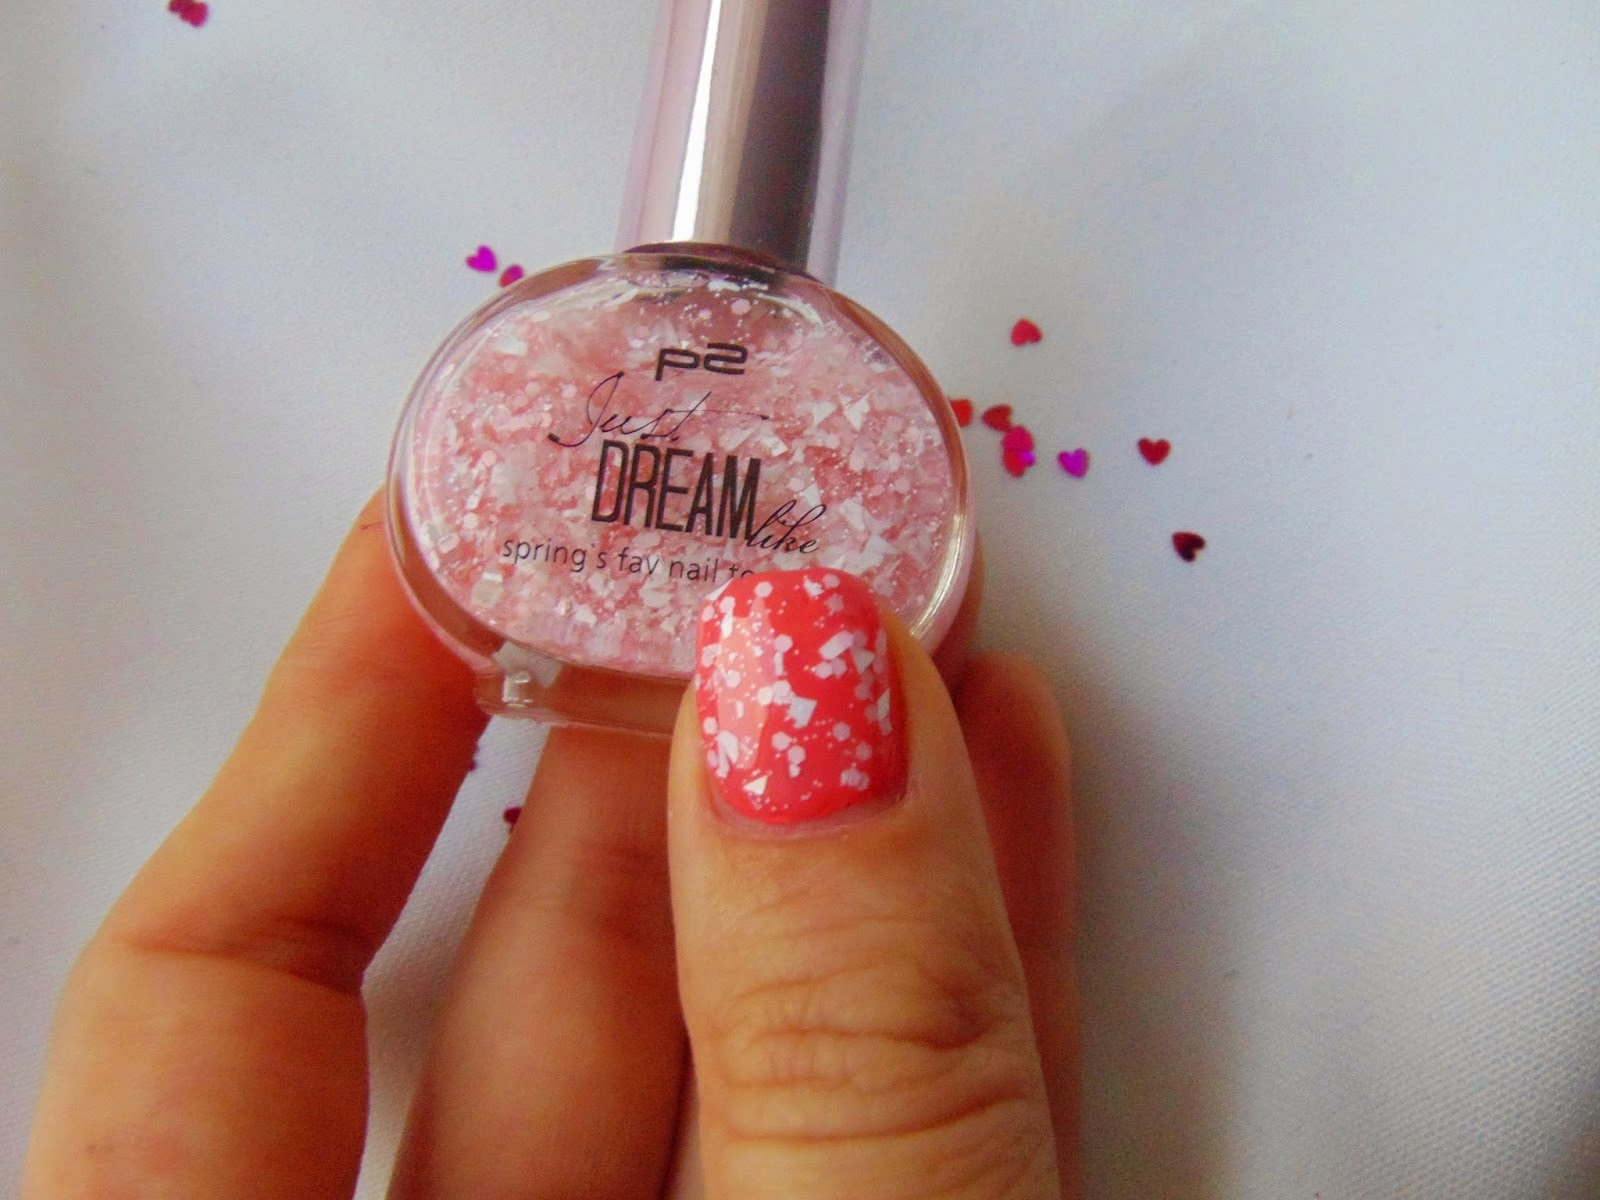 p2 Limited Edition: Just dream like - spring's fav nail top coat - Peach delight dots Swatch - www.annitschkasblog.de